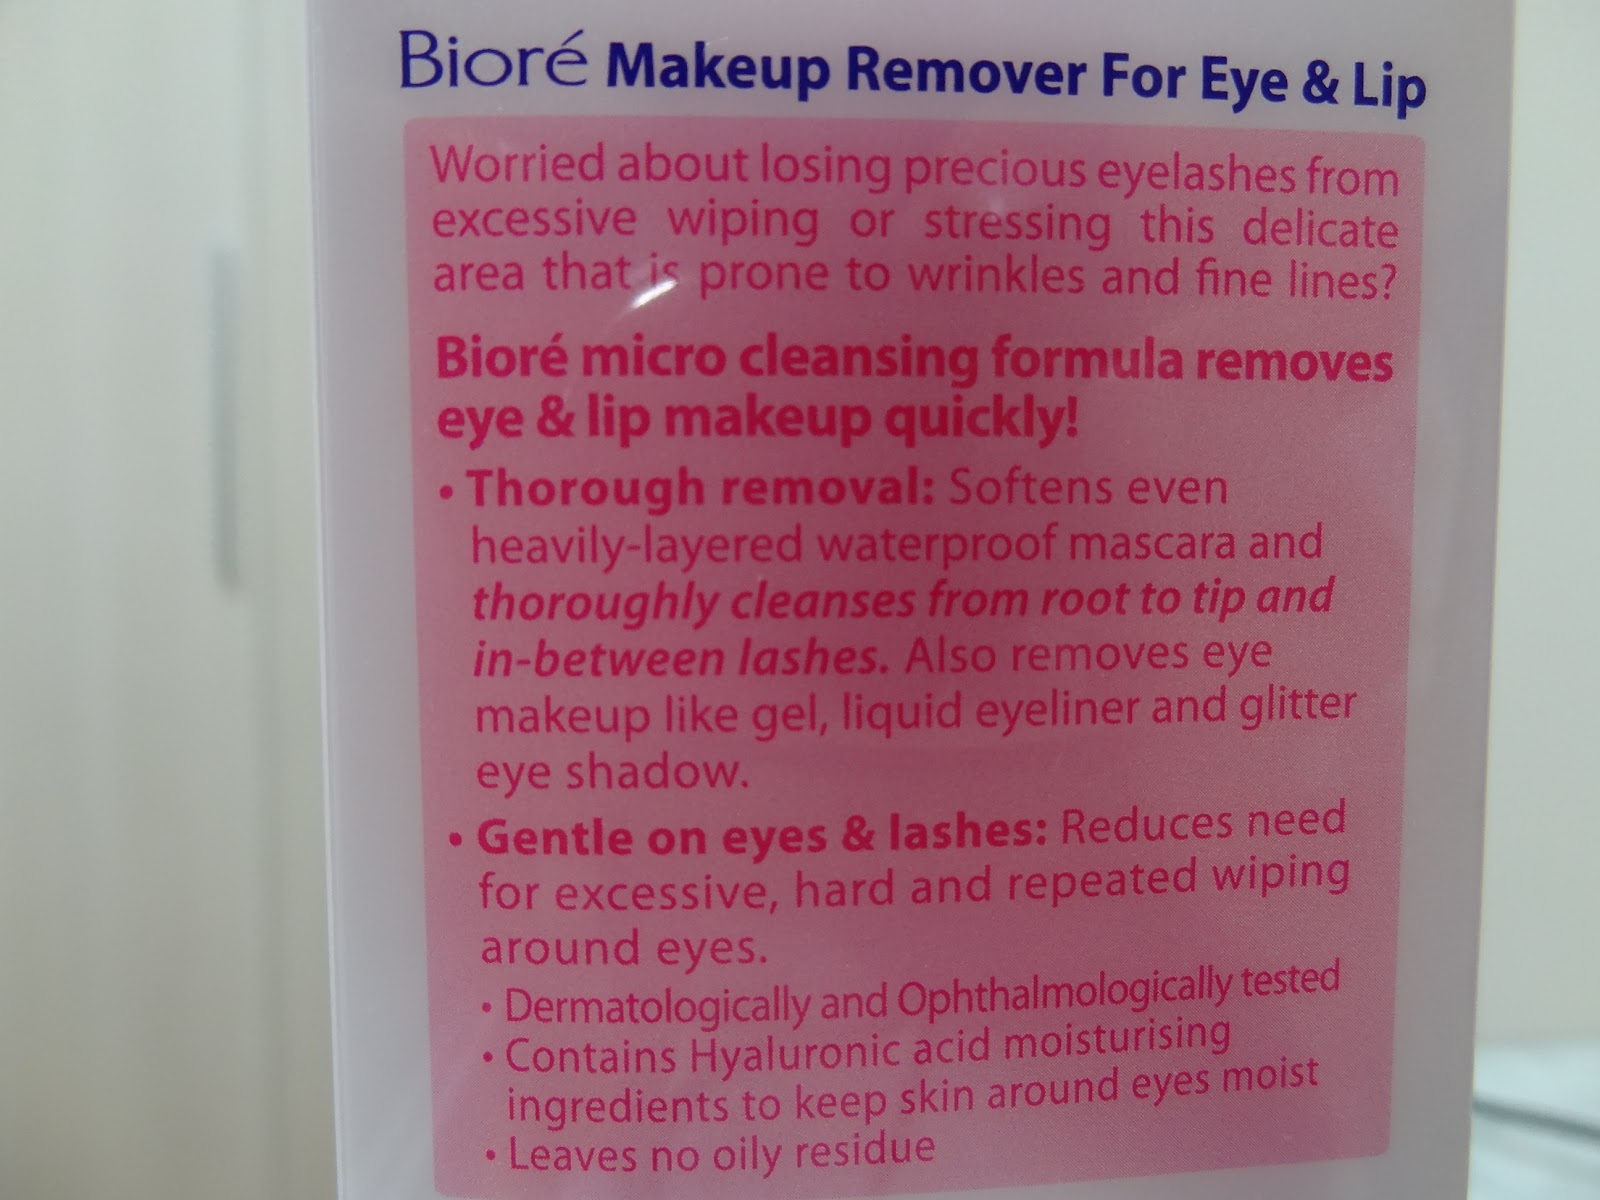 Properties of Biore Makeup Remover for Eyes and Lips